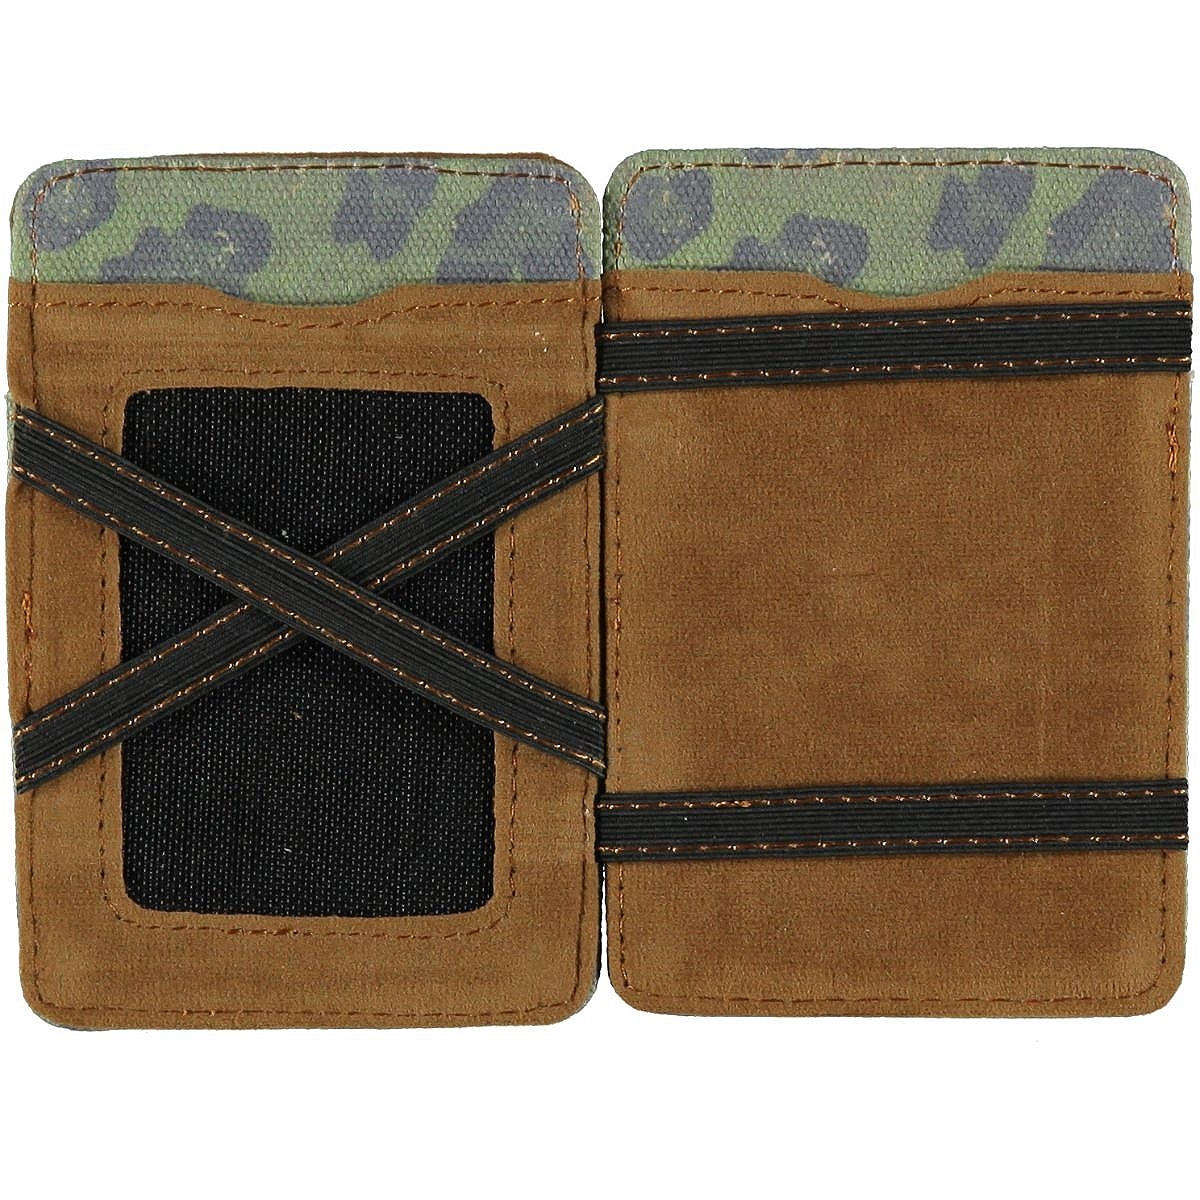 Pictures Icon Wallet image #6014